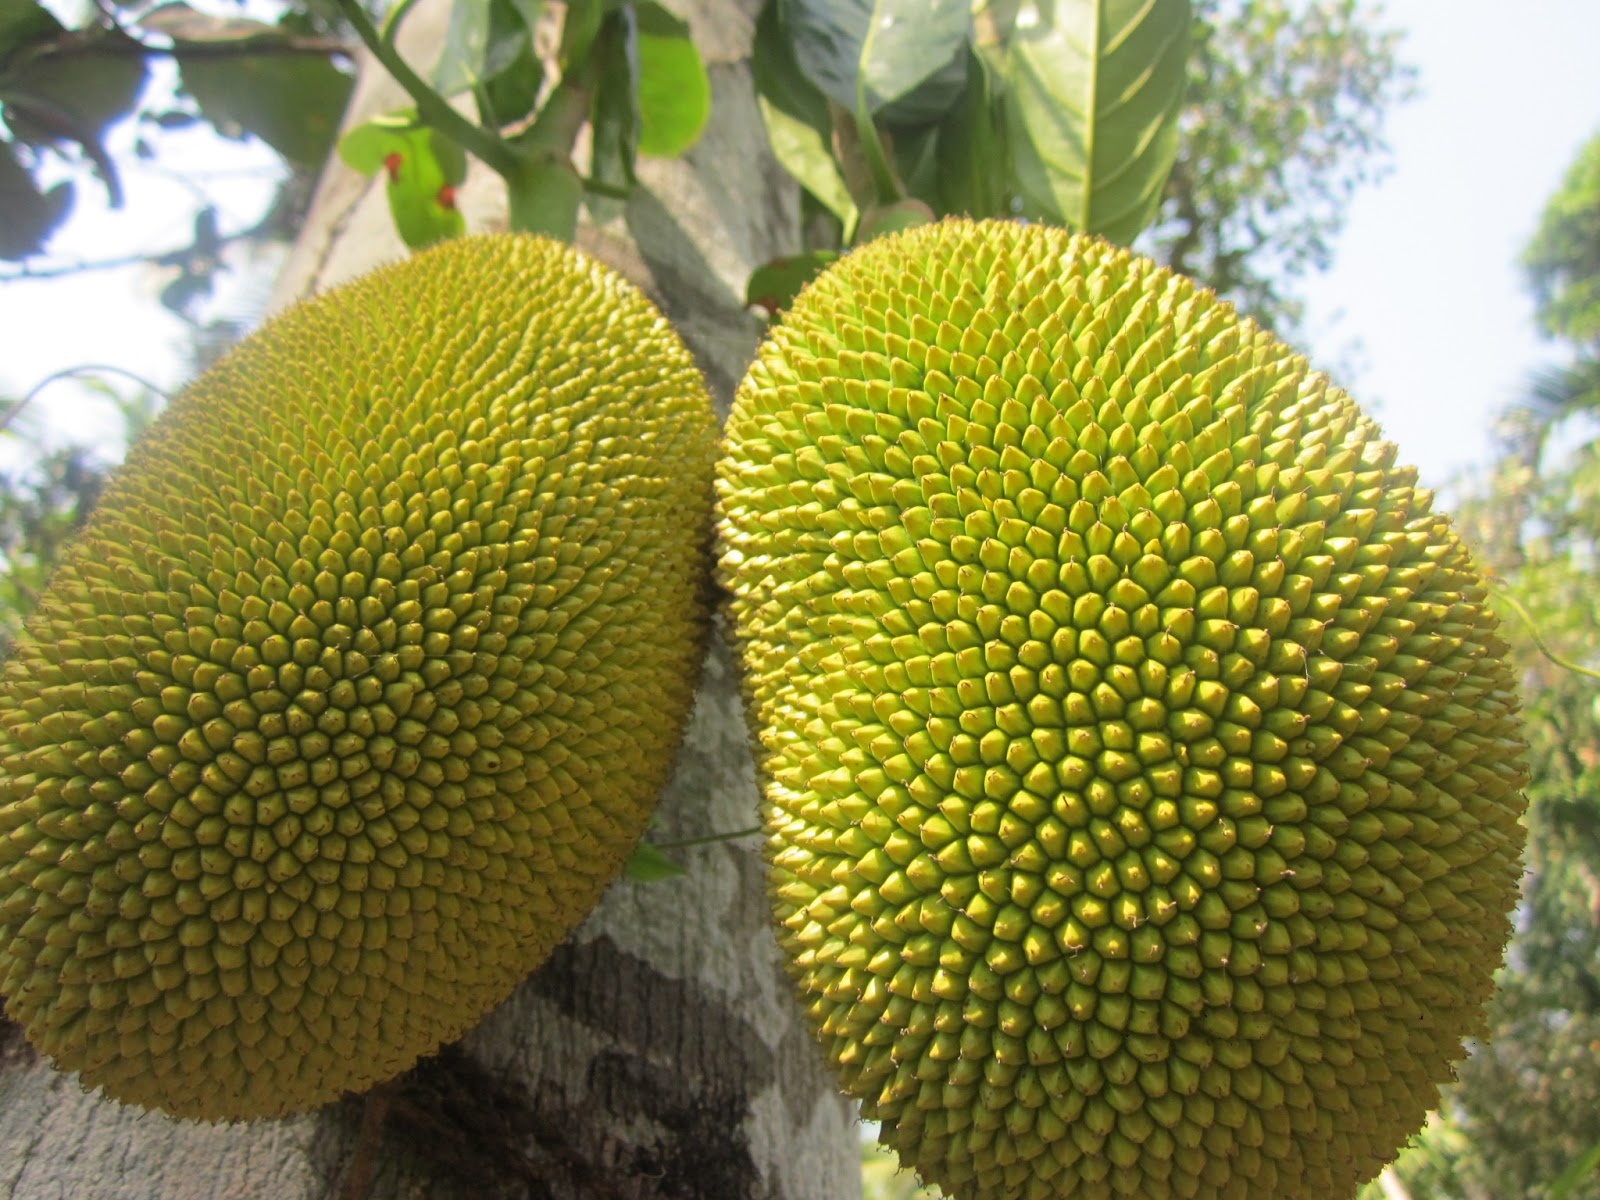 jackfruit vs durian  ways they are not the same, Beautiful flower